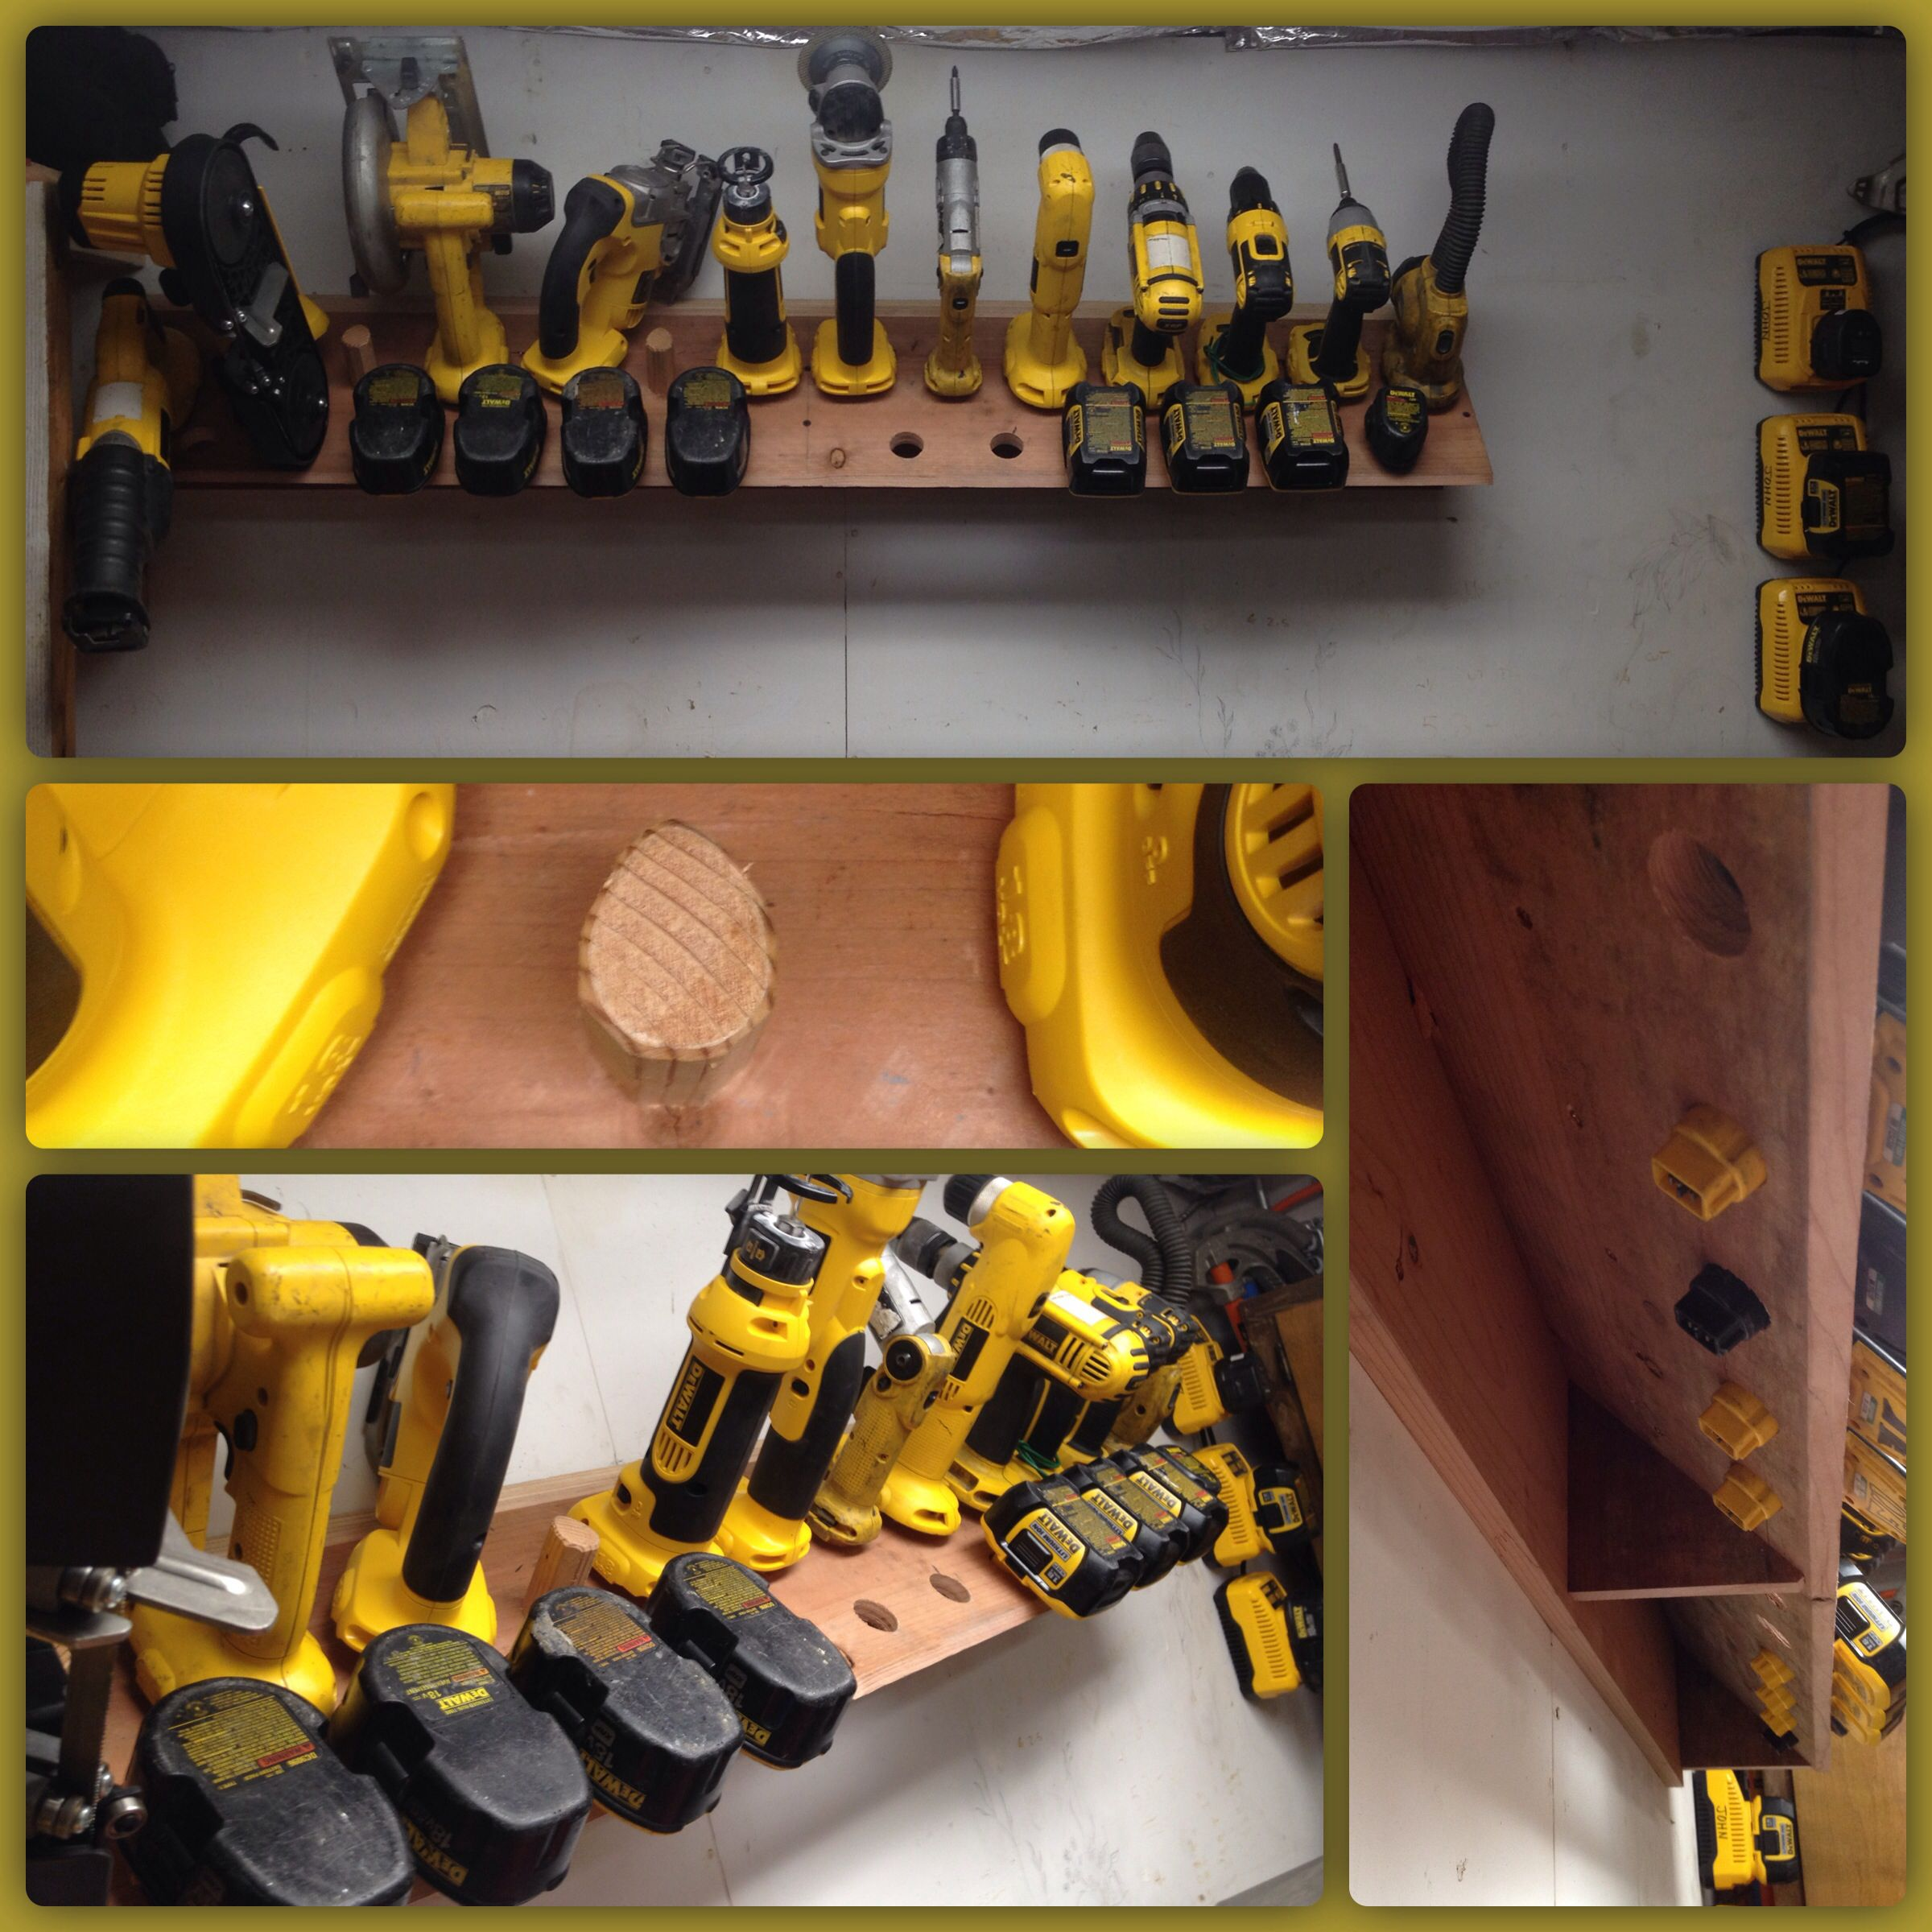 My Idea For A Cordless Tool Open Storage Shelf I Made A